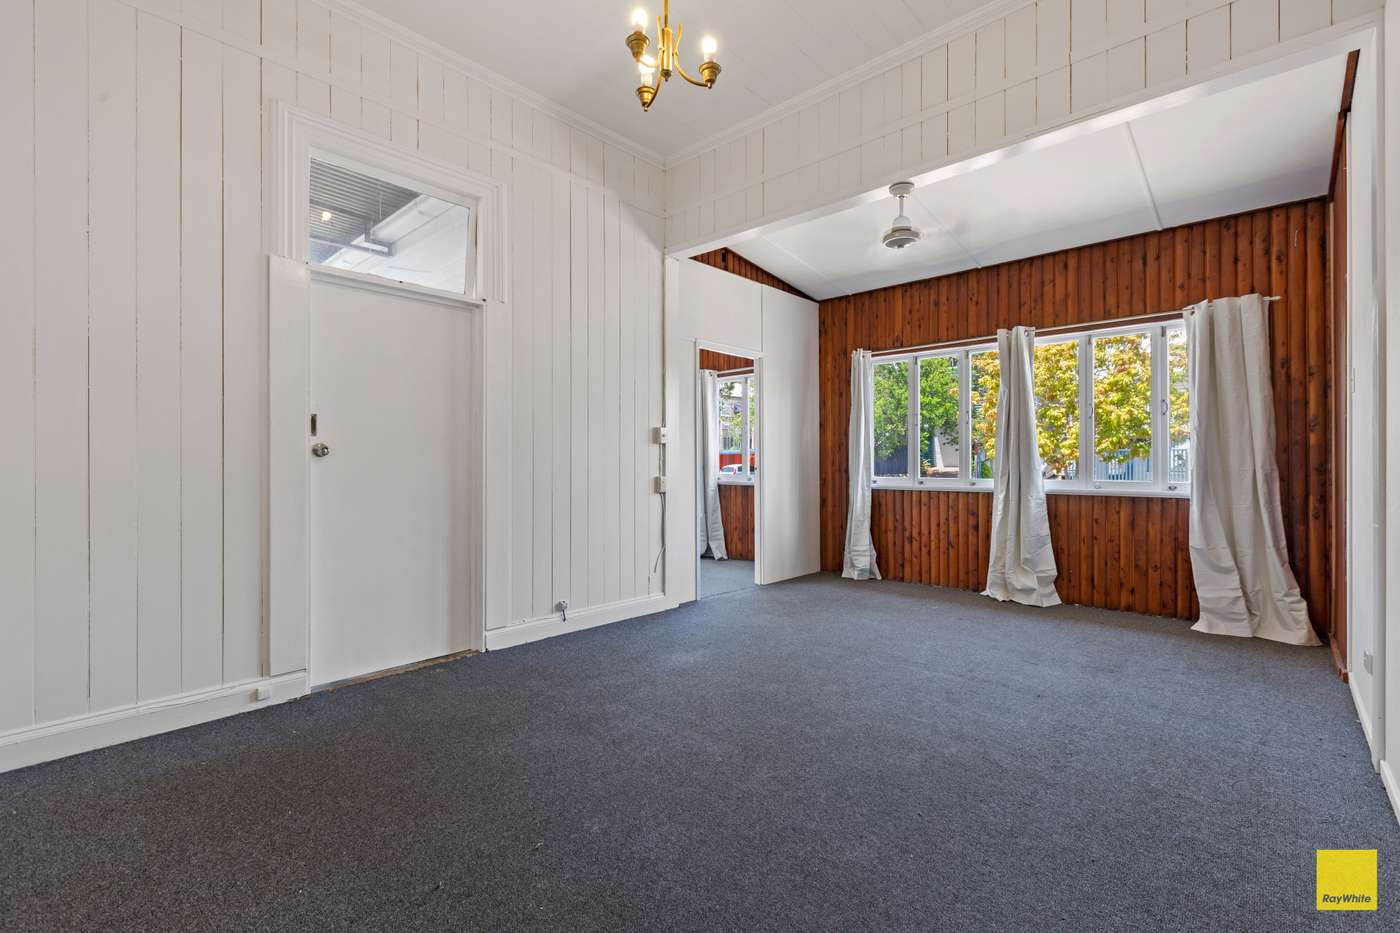 Main view of Homely apartment listing, 1/16 Elfin Street, East Brisbane, QLD 4169